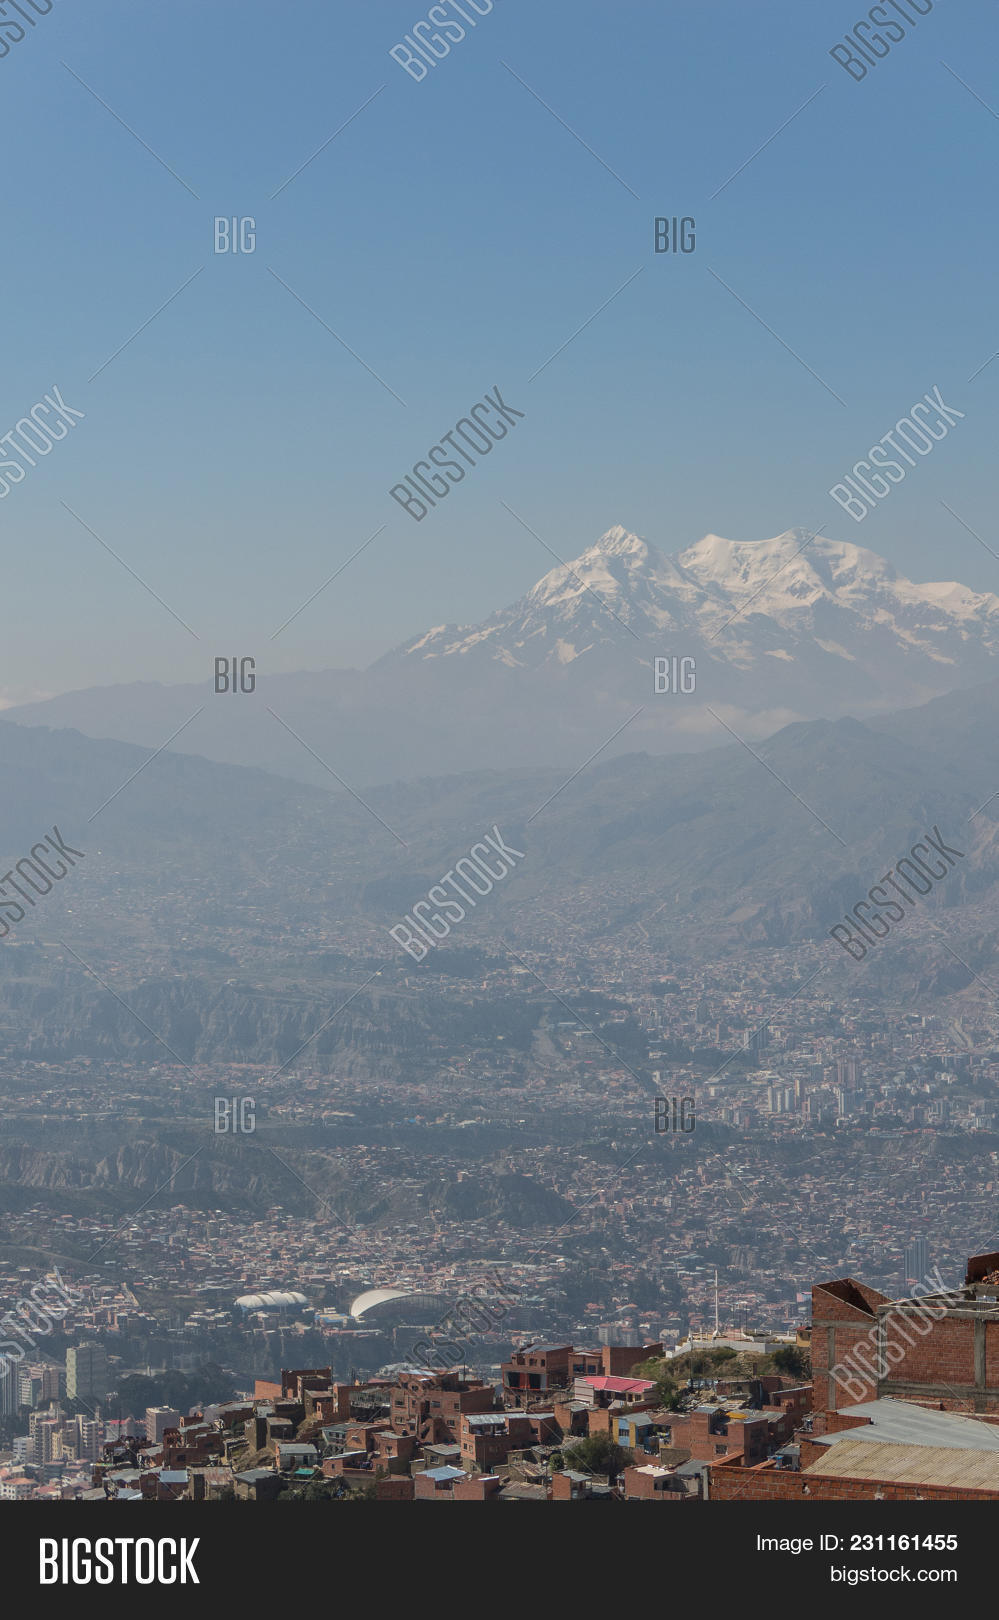 The city of La Paz high in the Andes Mountains in Bolivia - viewed from Mirador Kilikili. La Paz, Bolivia.